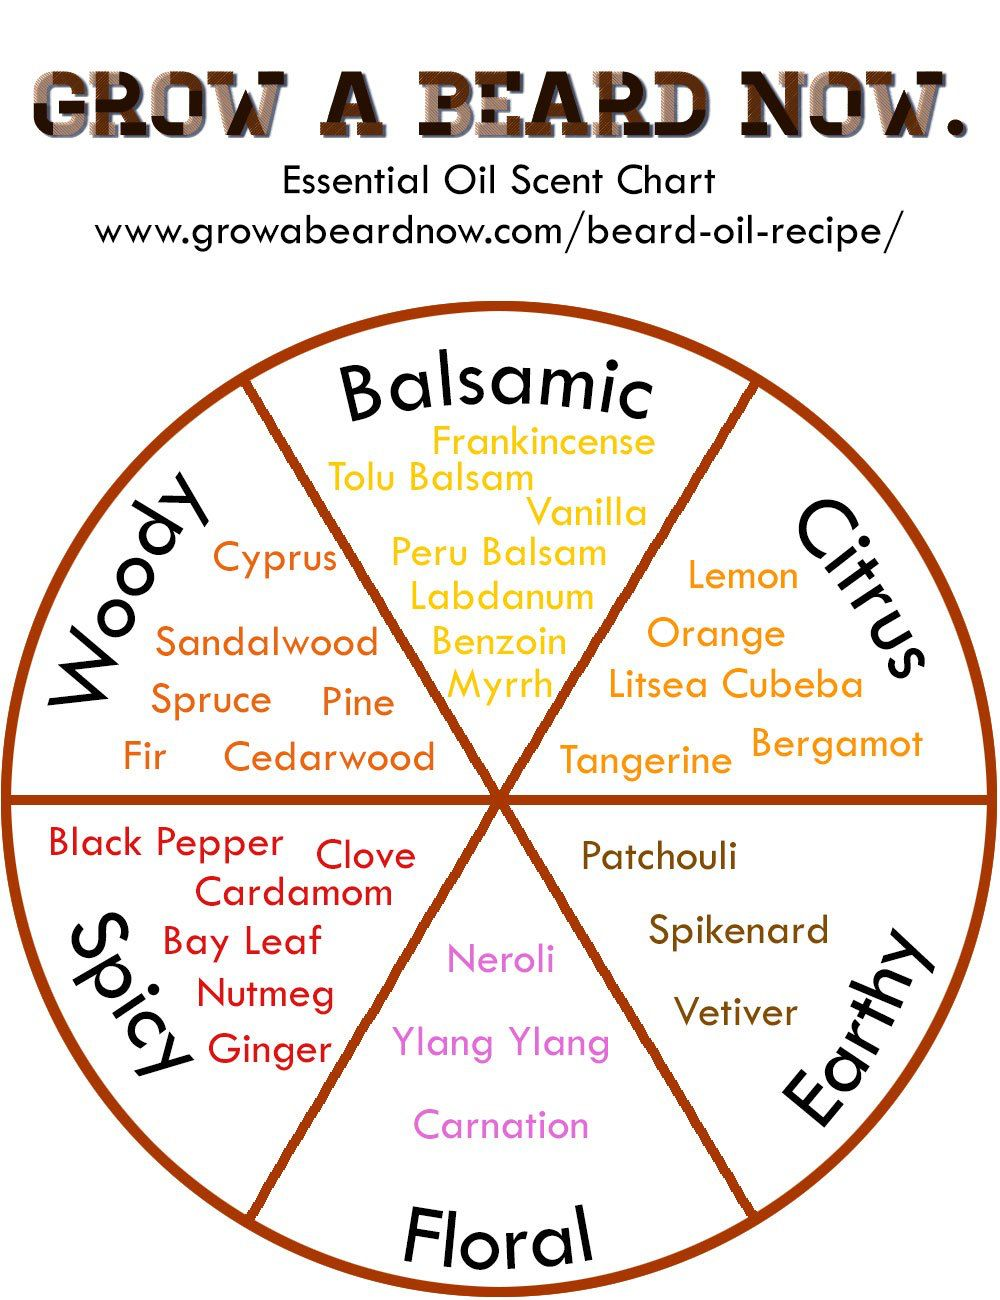 Essential oils scent chart (With images) Beard oil